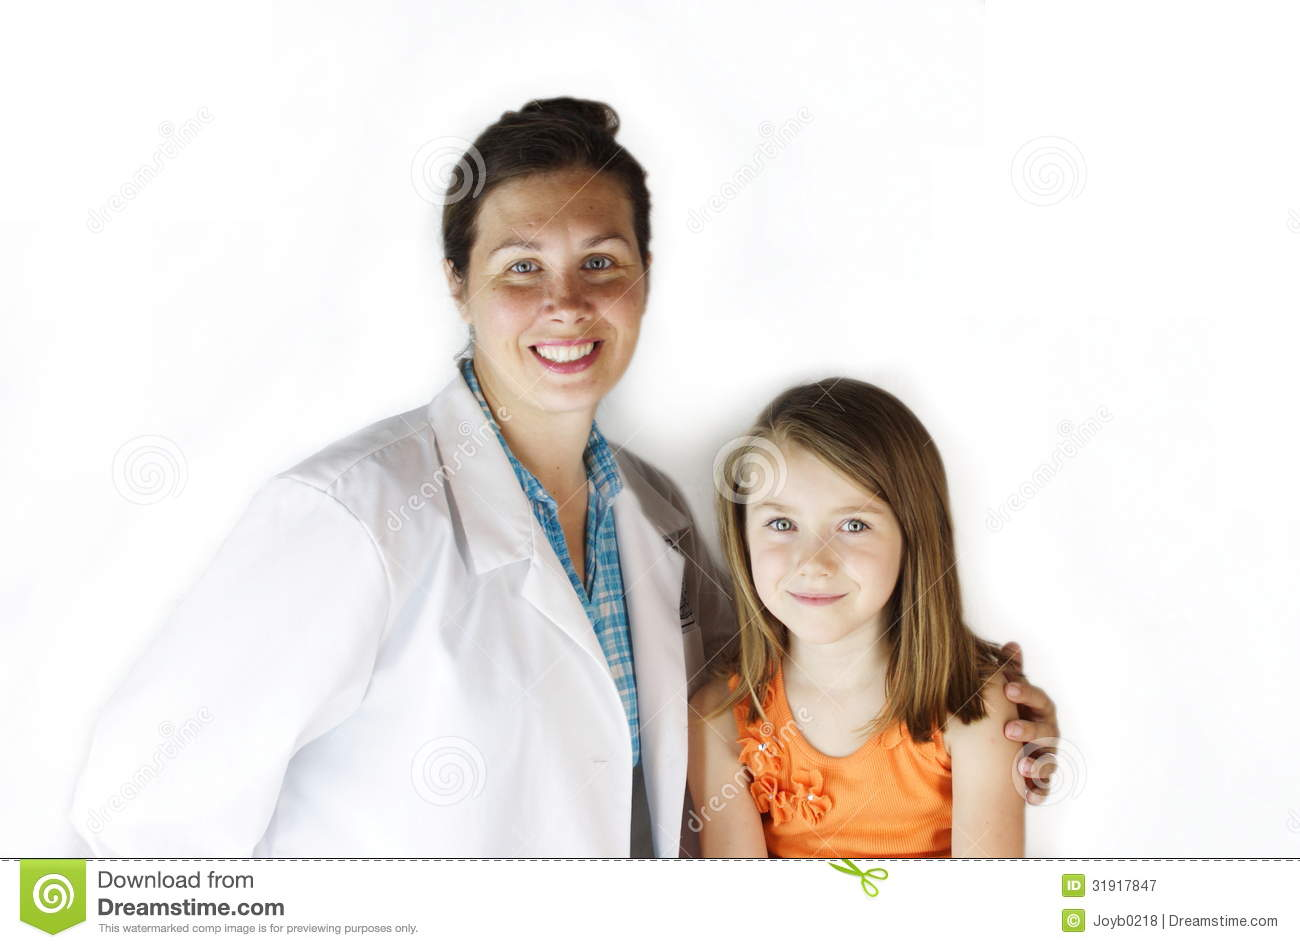 Doctor with girl patient